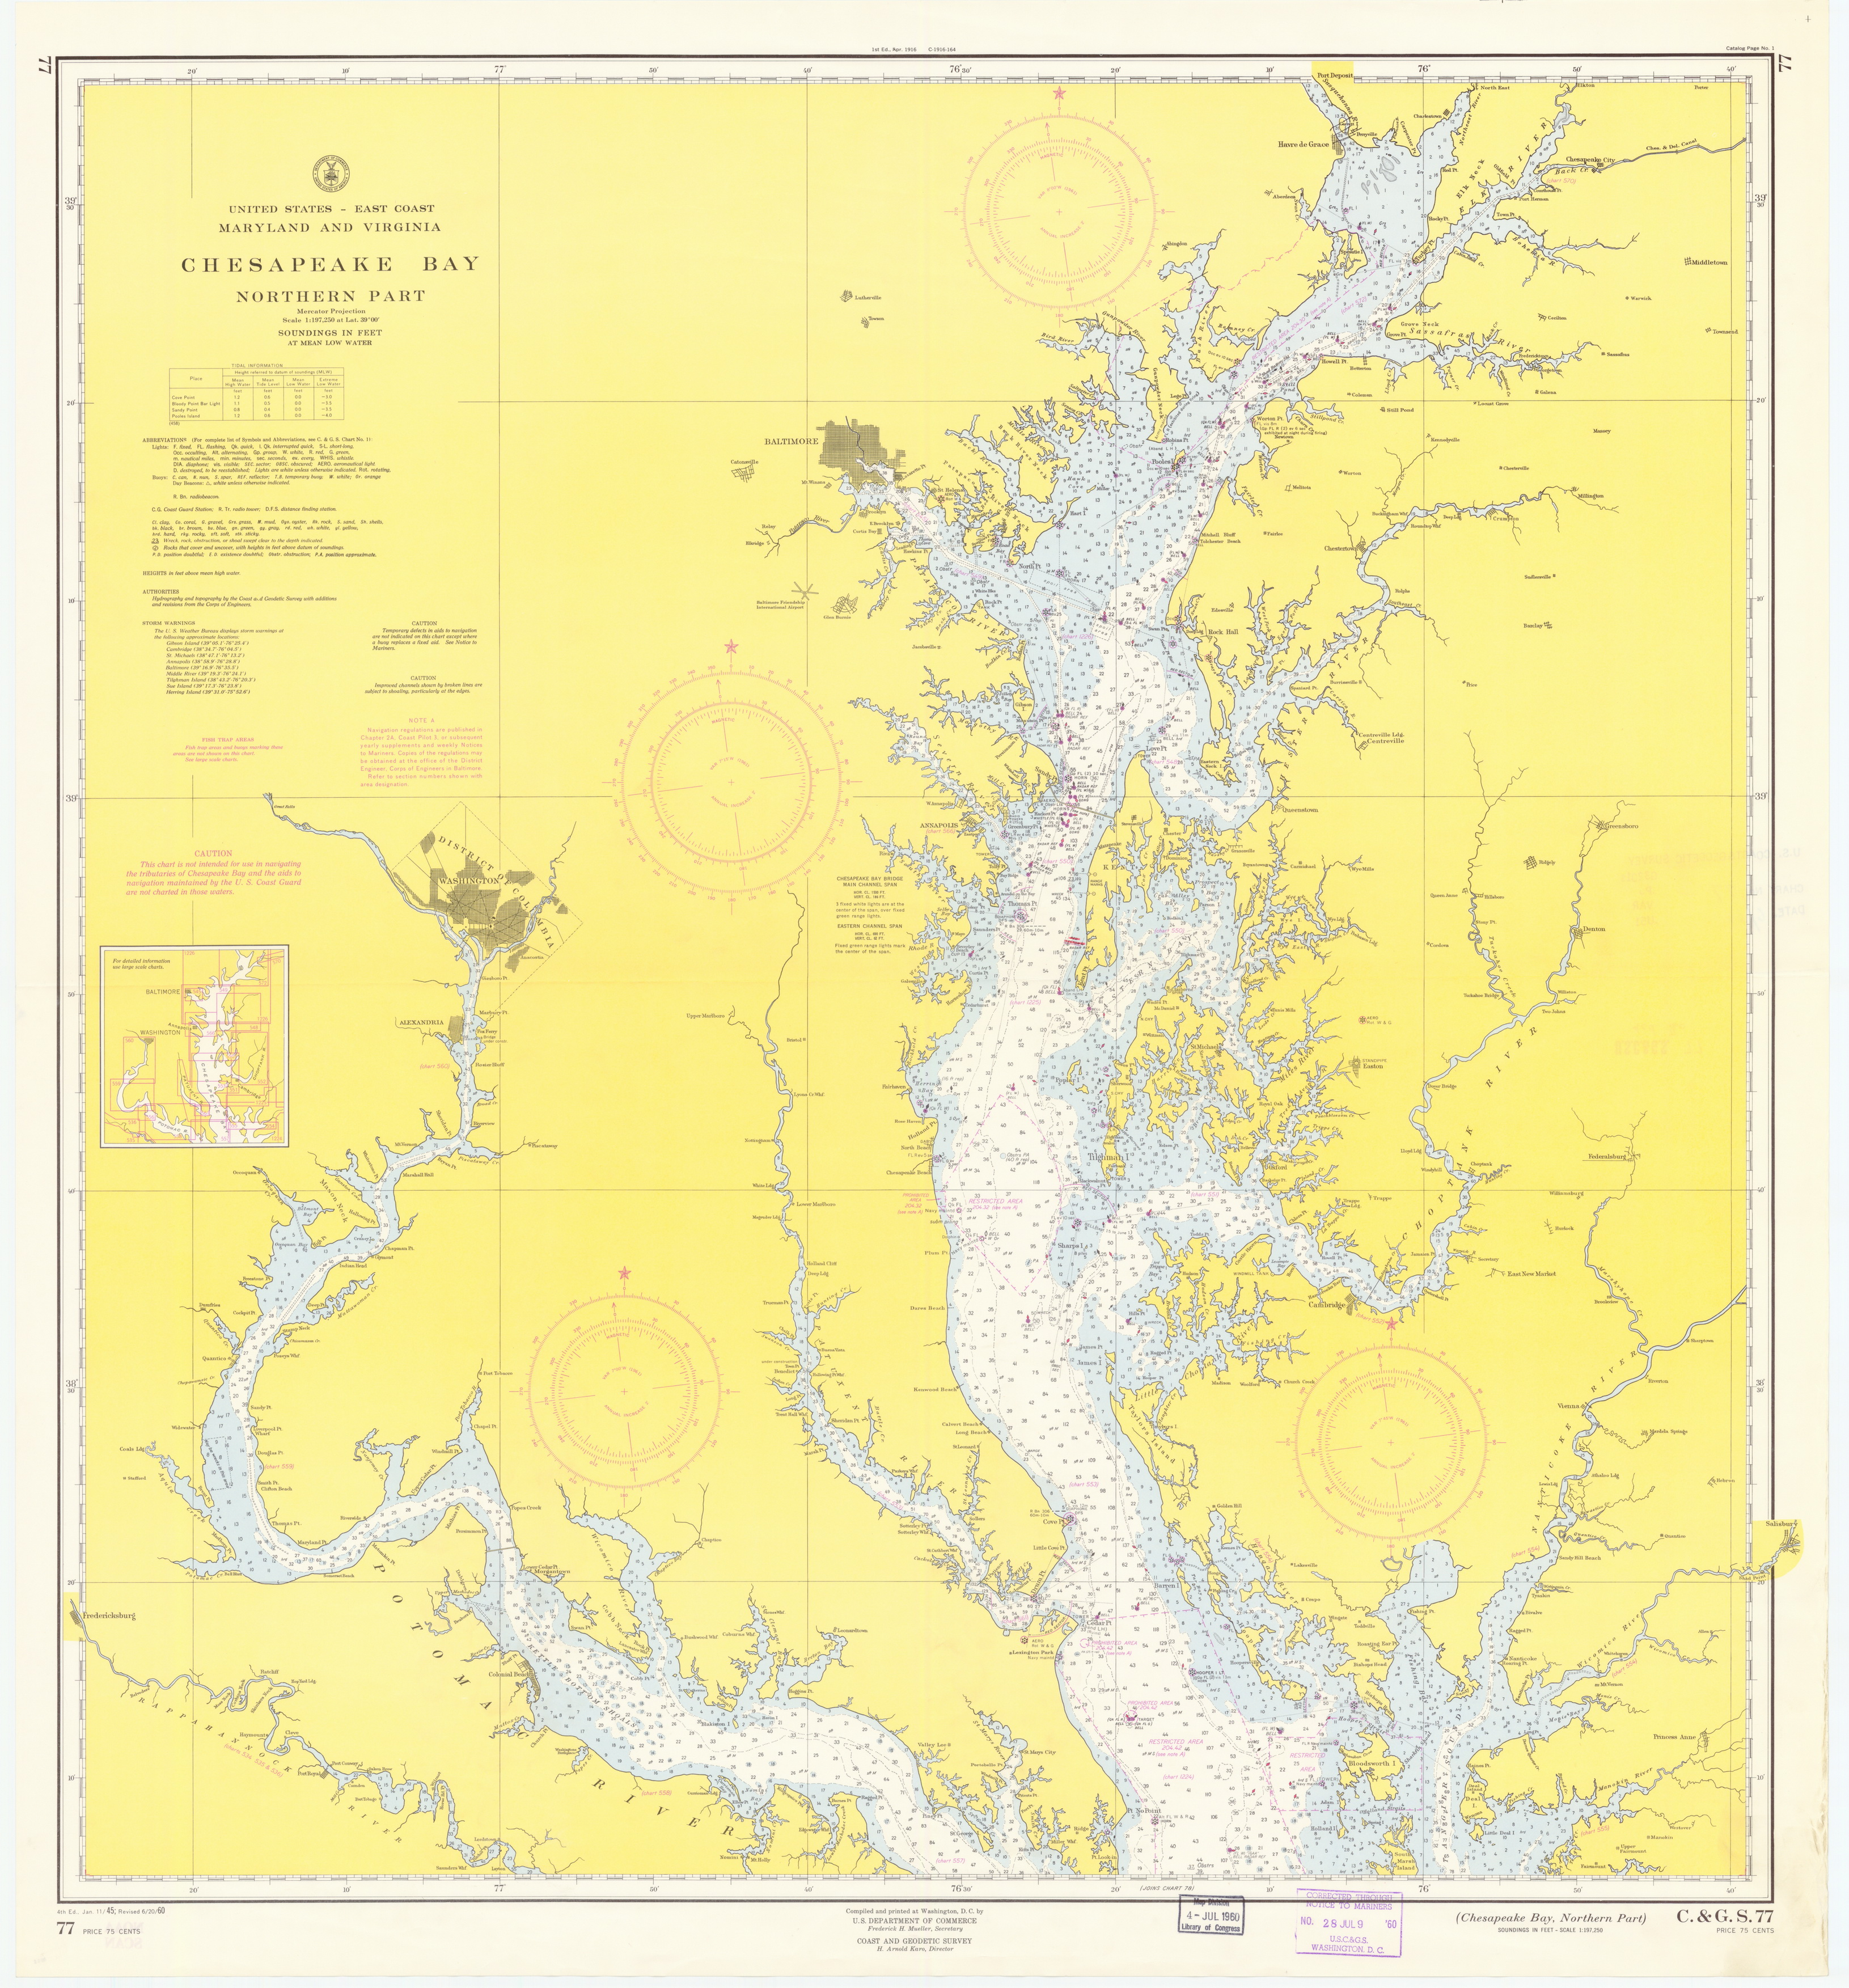 Historical Nautical Charts Of The Southern Part Of The